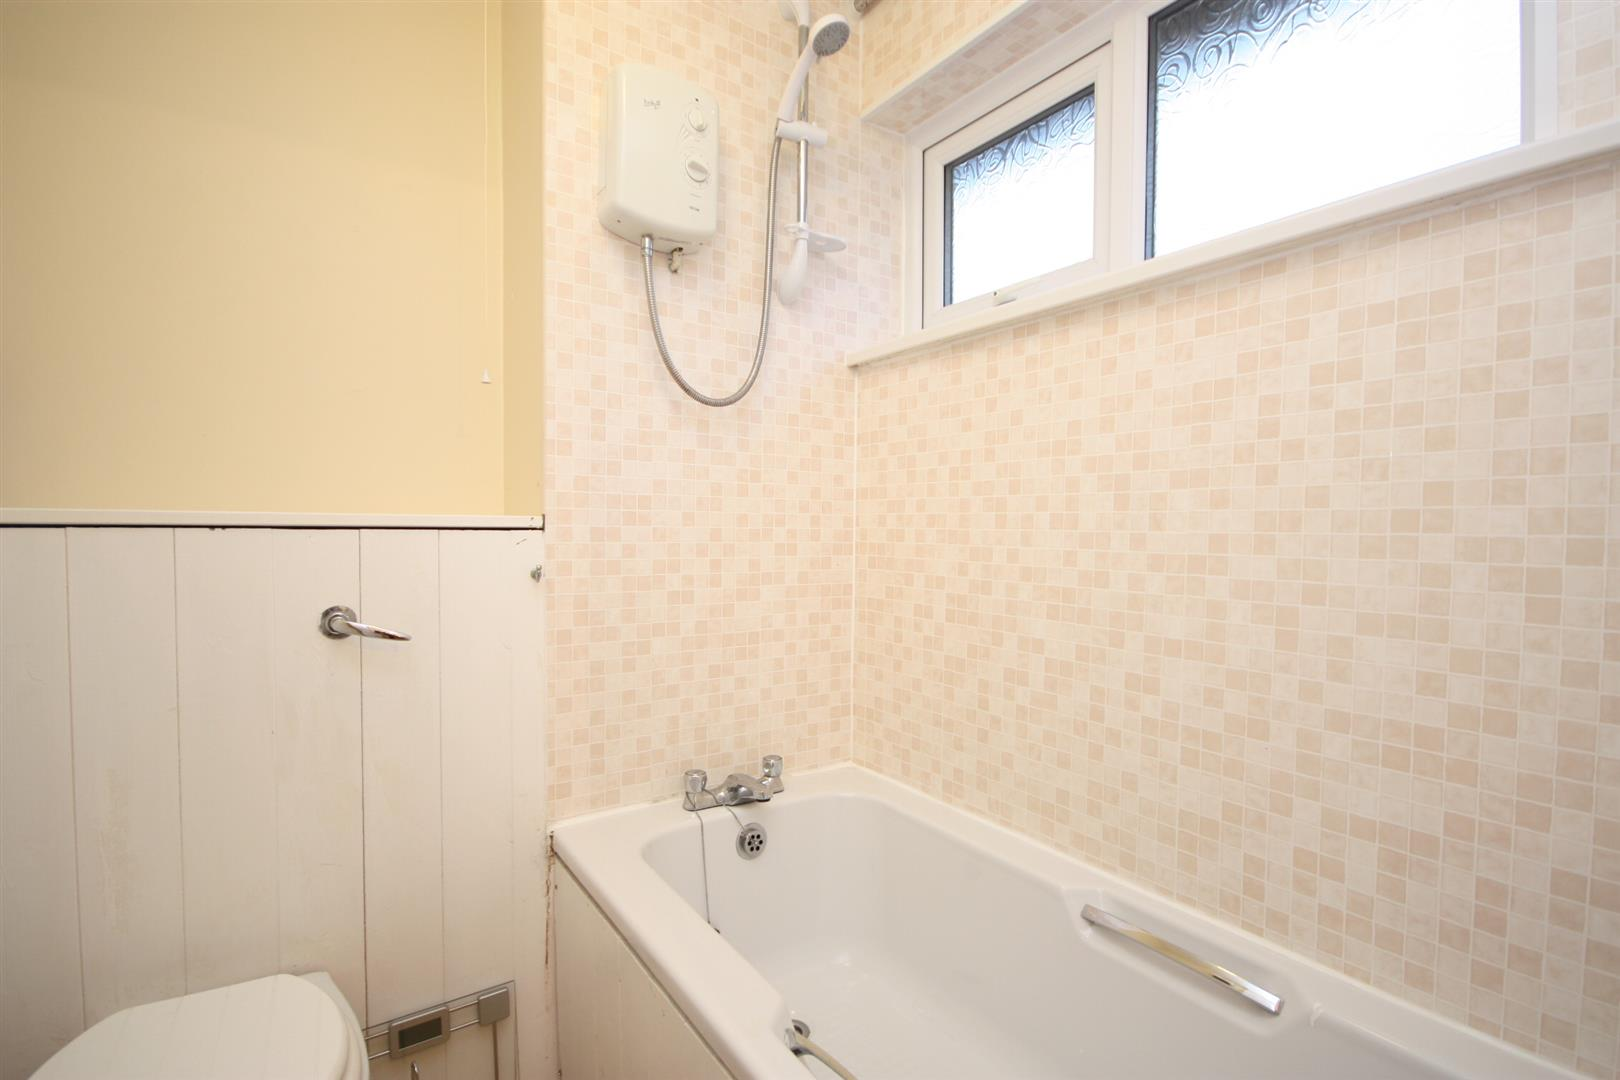 walesby court leeds hardisty and co fitted with a white bath and wc electric shower over the bath and electric wall heater modern wood effect flooring and upvc double glazed window to the